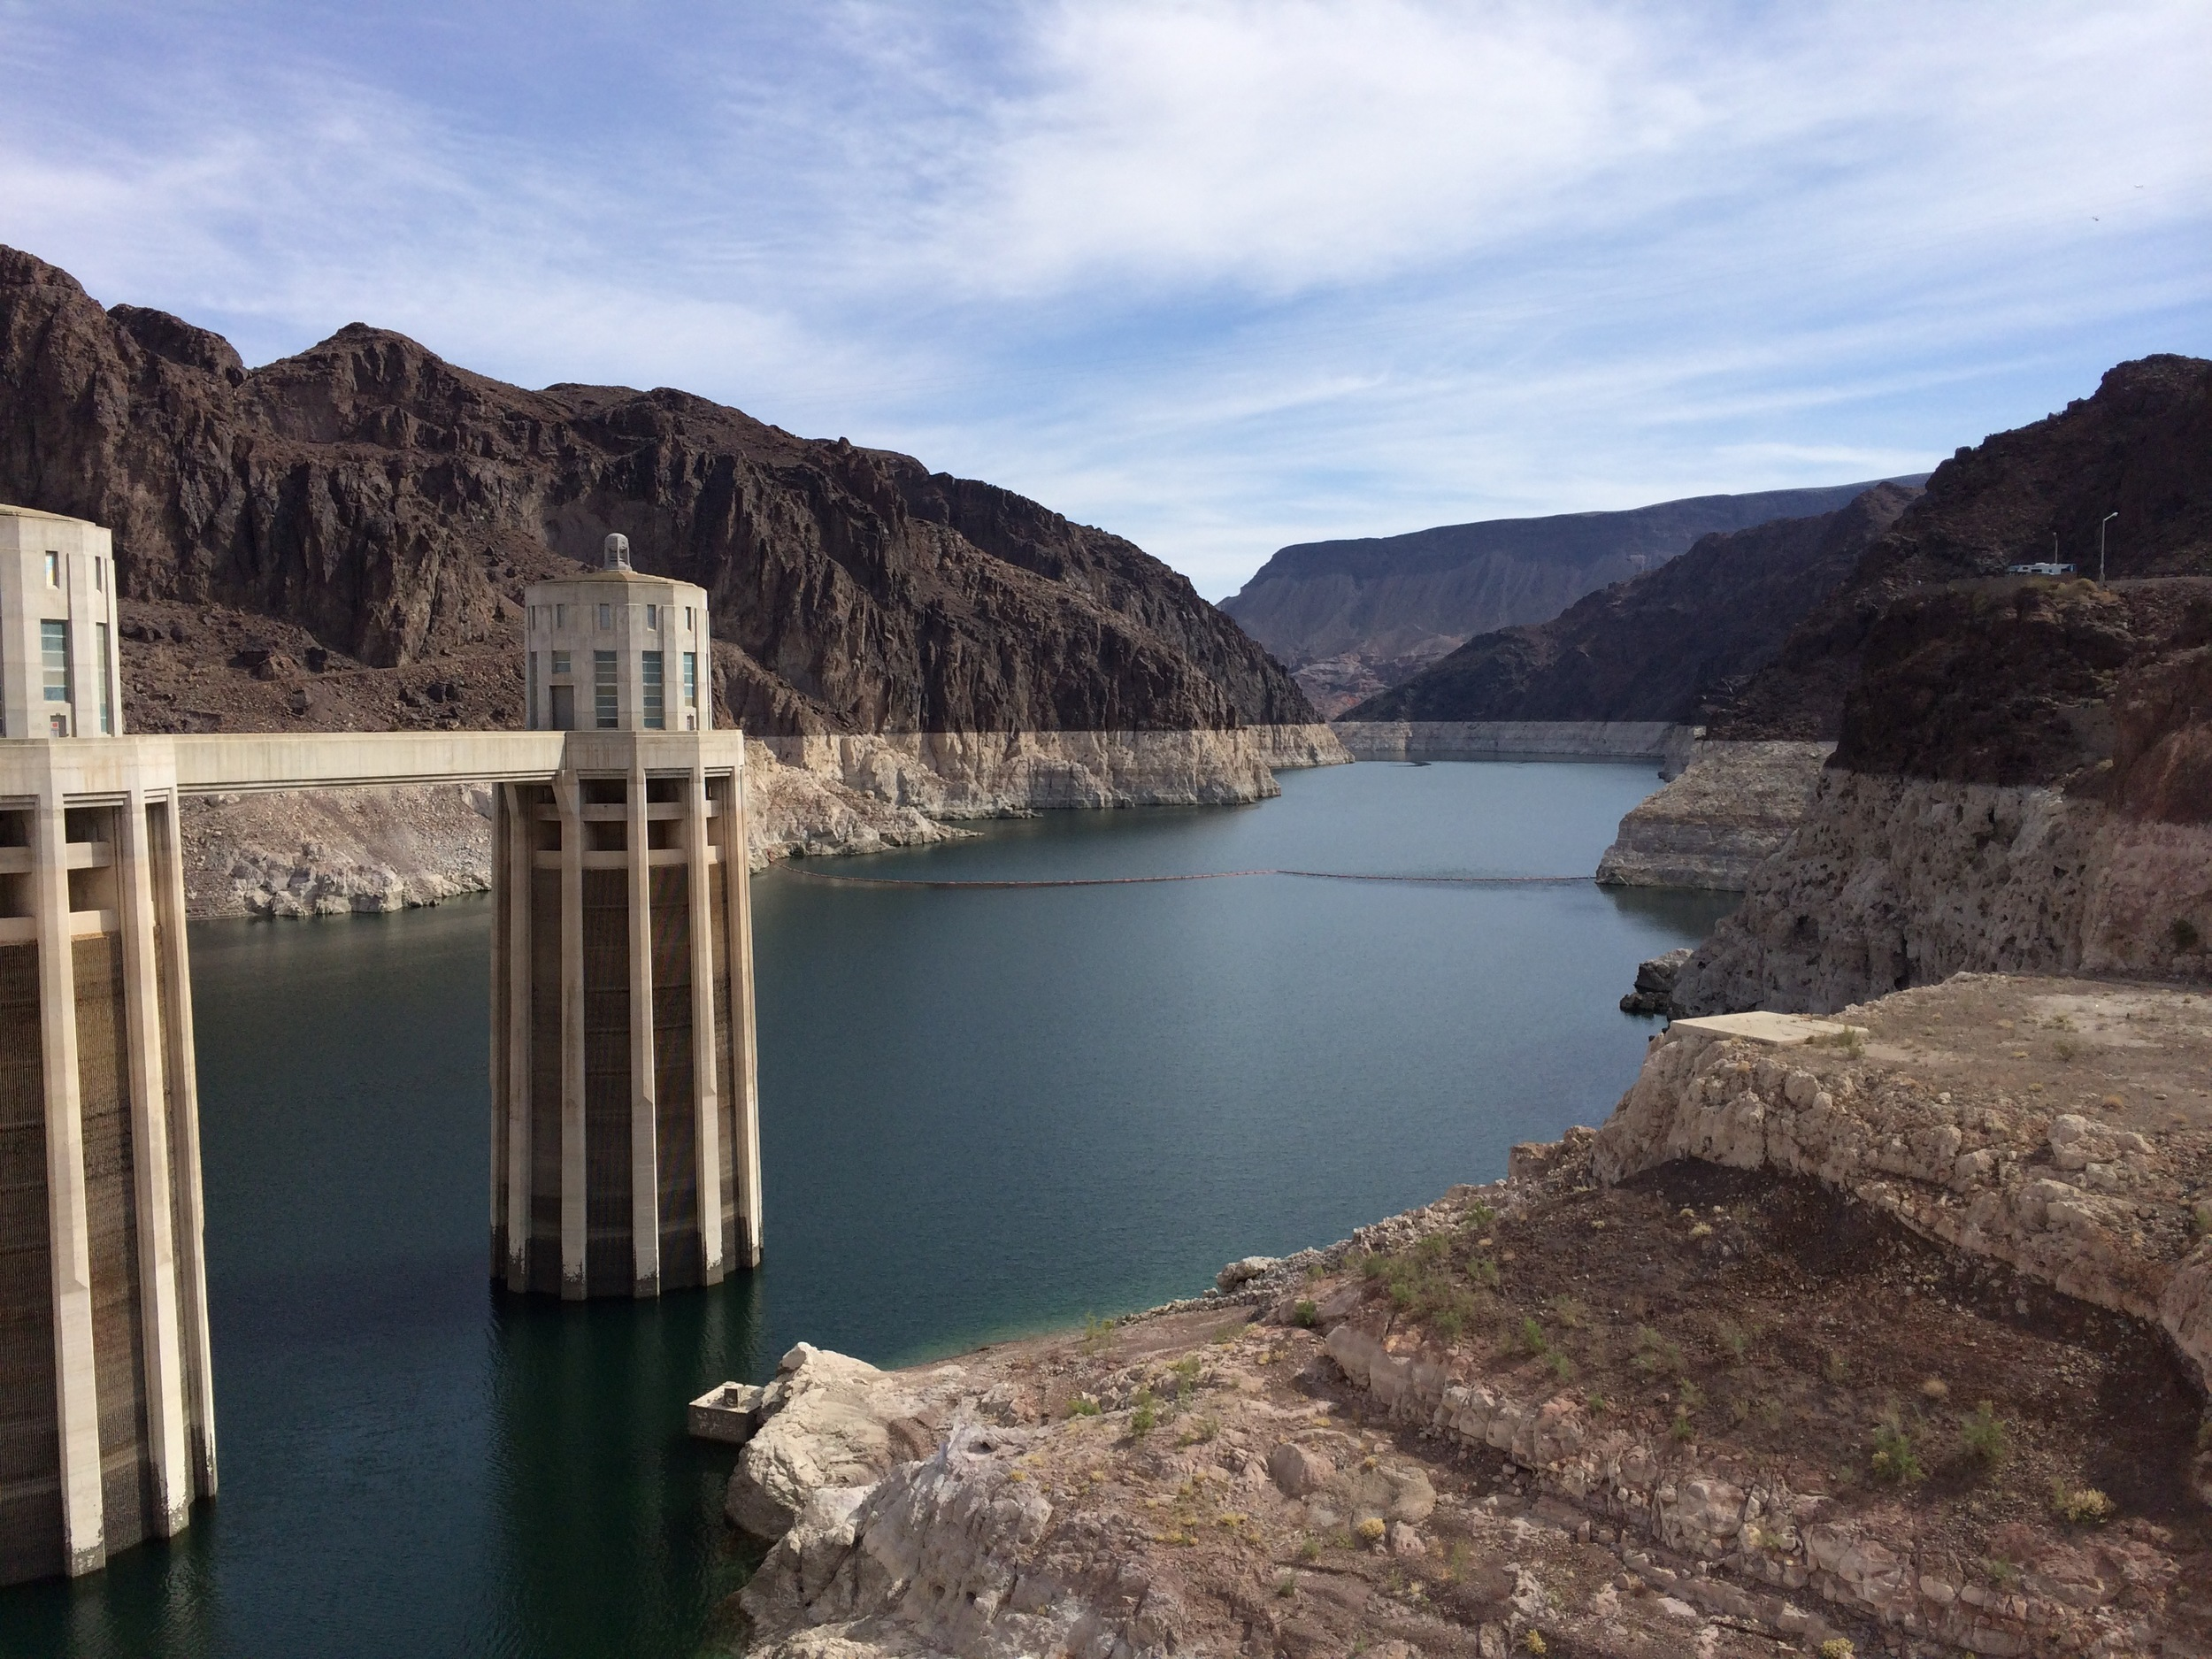 Hoover Dam and Lake Mead National Recreation Area. The lake is very low as is obvious from the water line marks.